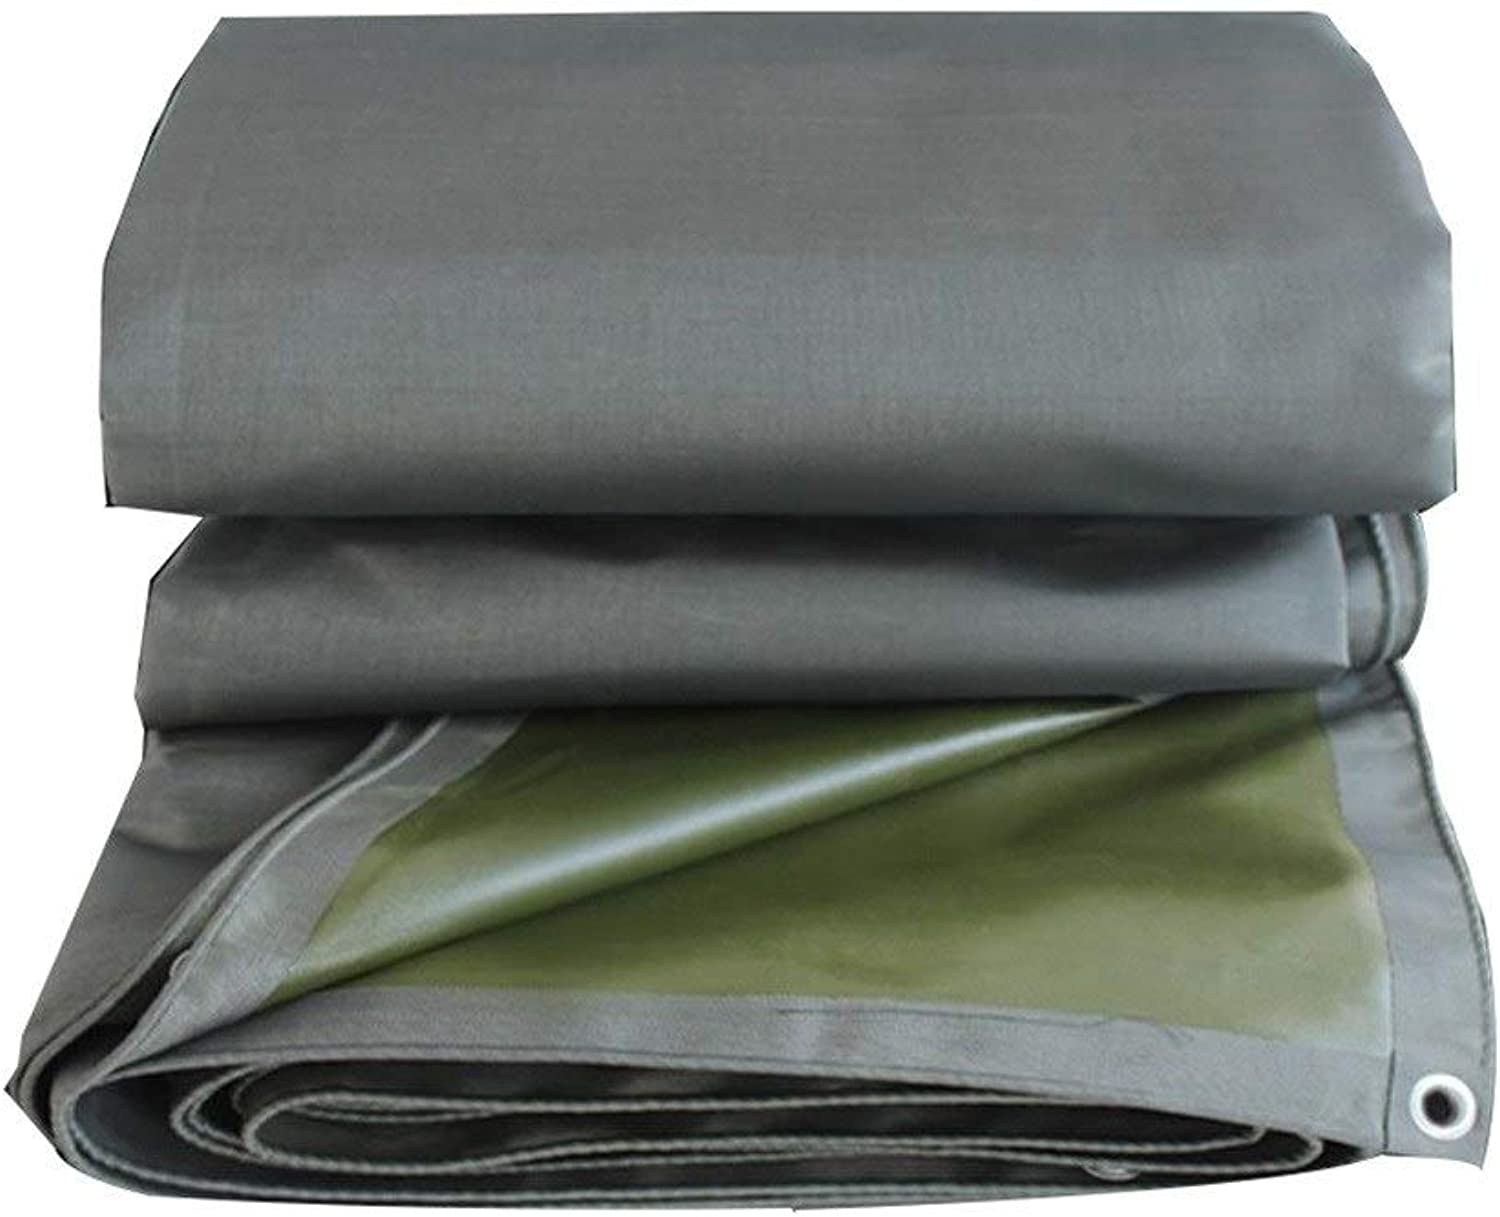 ZHANGQINAG Heavy Duty Thick Material, Waterproof, Great for Tarpaulin Canopy Tent, Boat, RV or Pool Cover (color   A, Size   4mx5m)